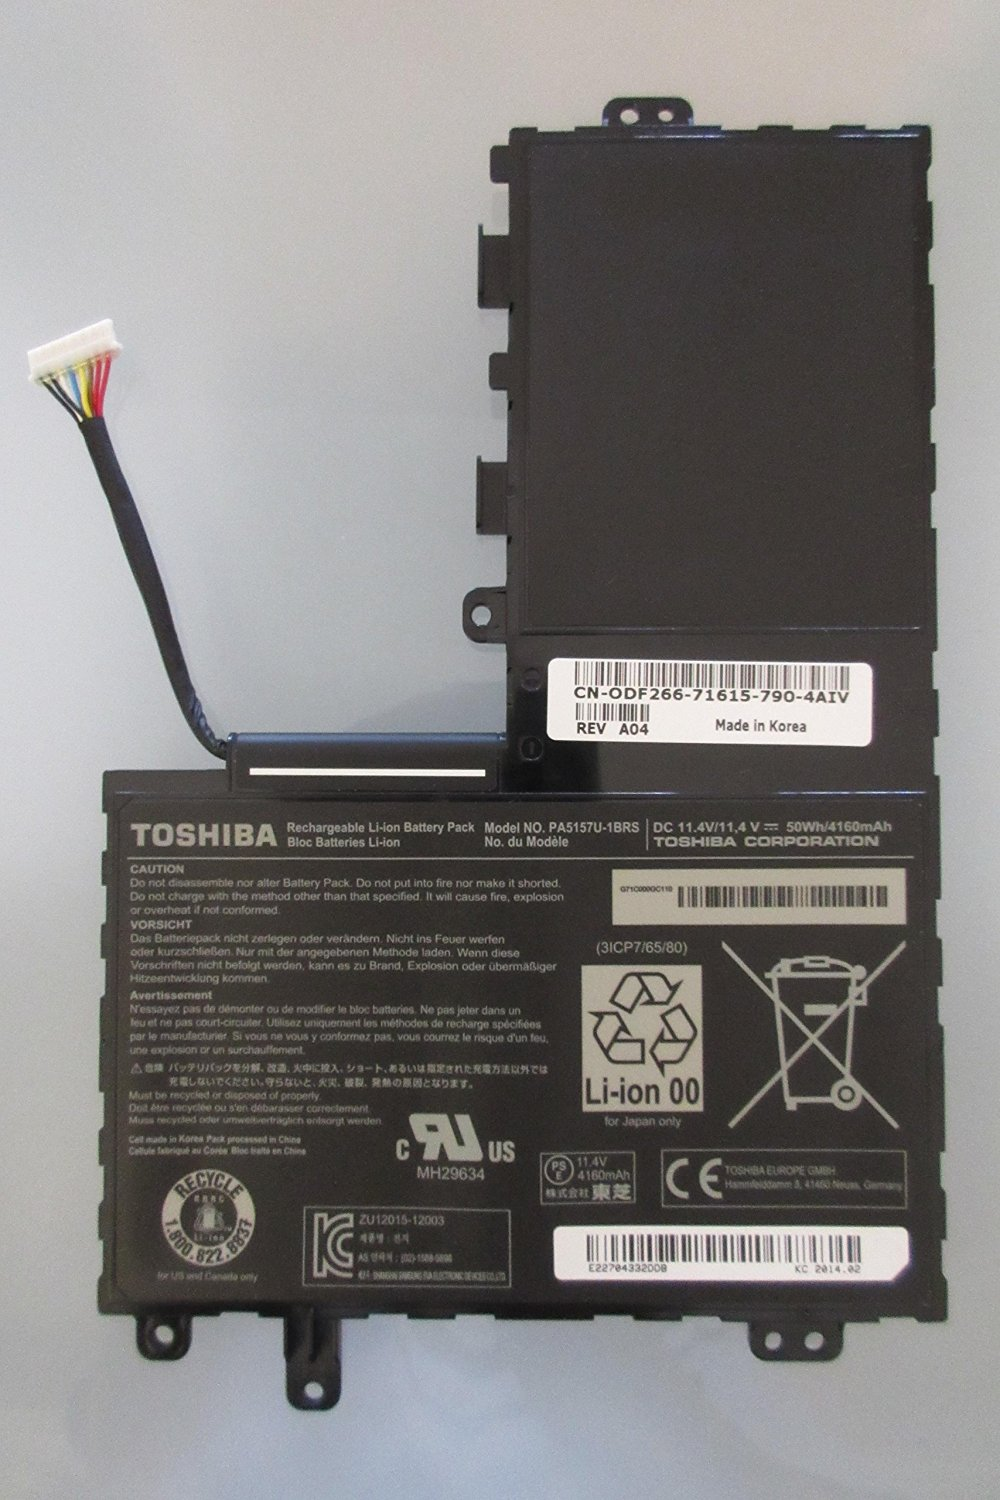 Li-ion 3 Cell Battery 50Wh 11.4V for Toshiba Satellite E55-A5114 Series New Genuine